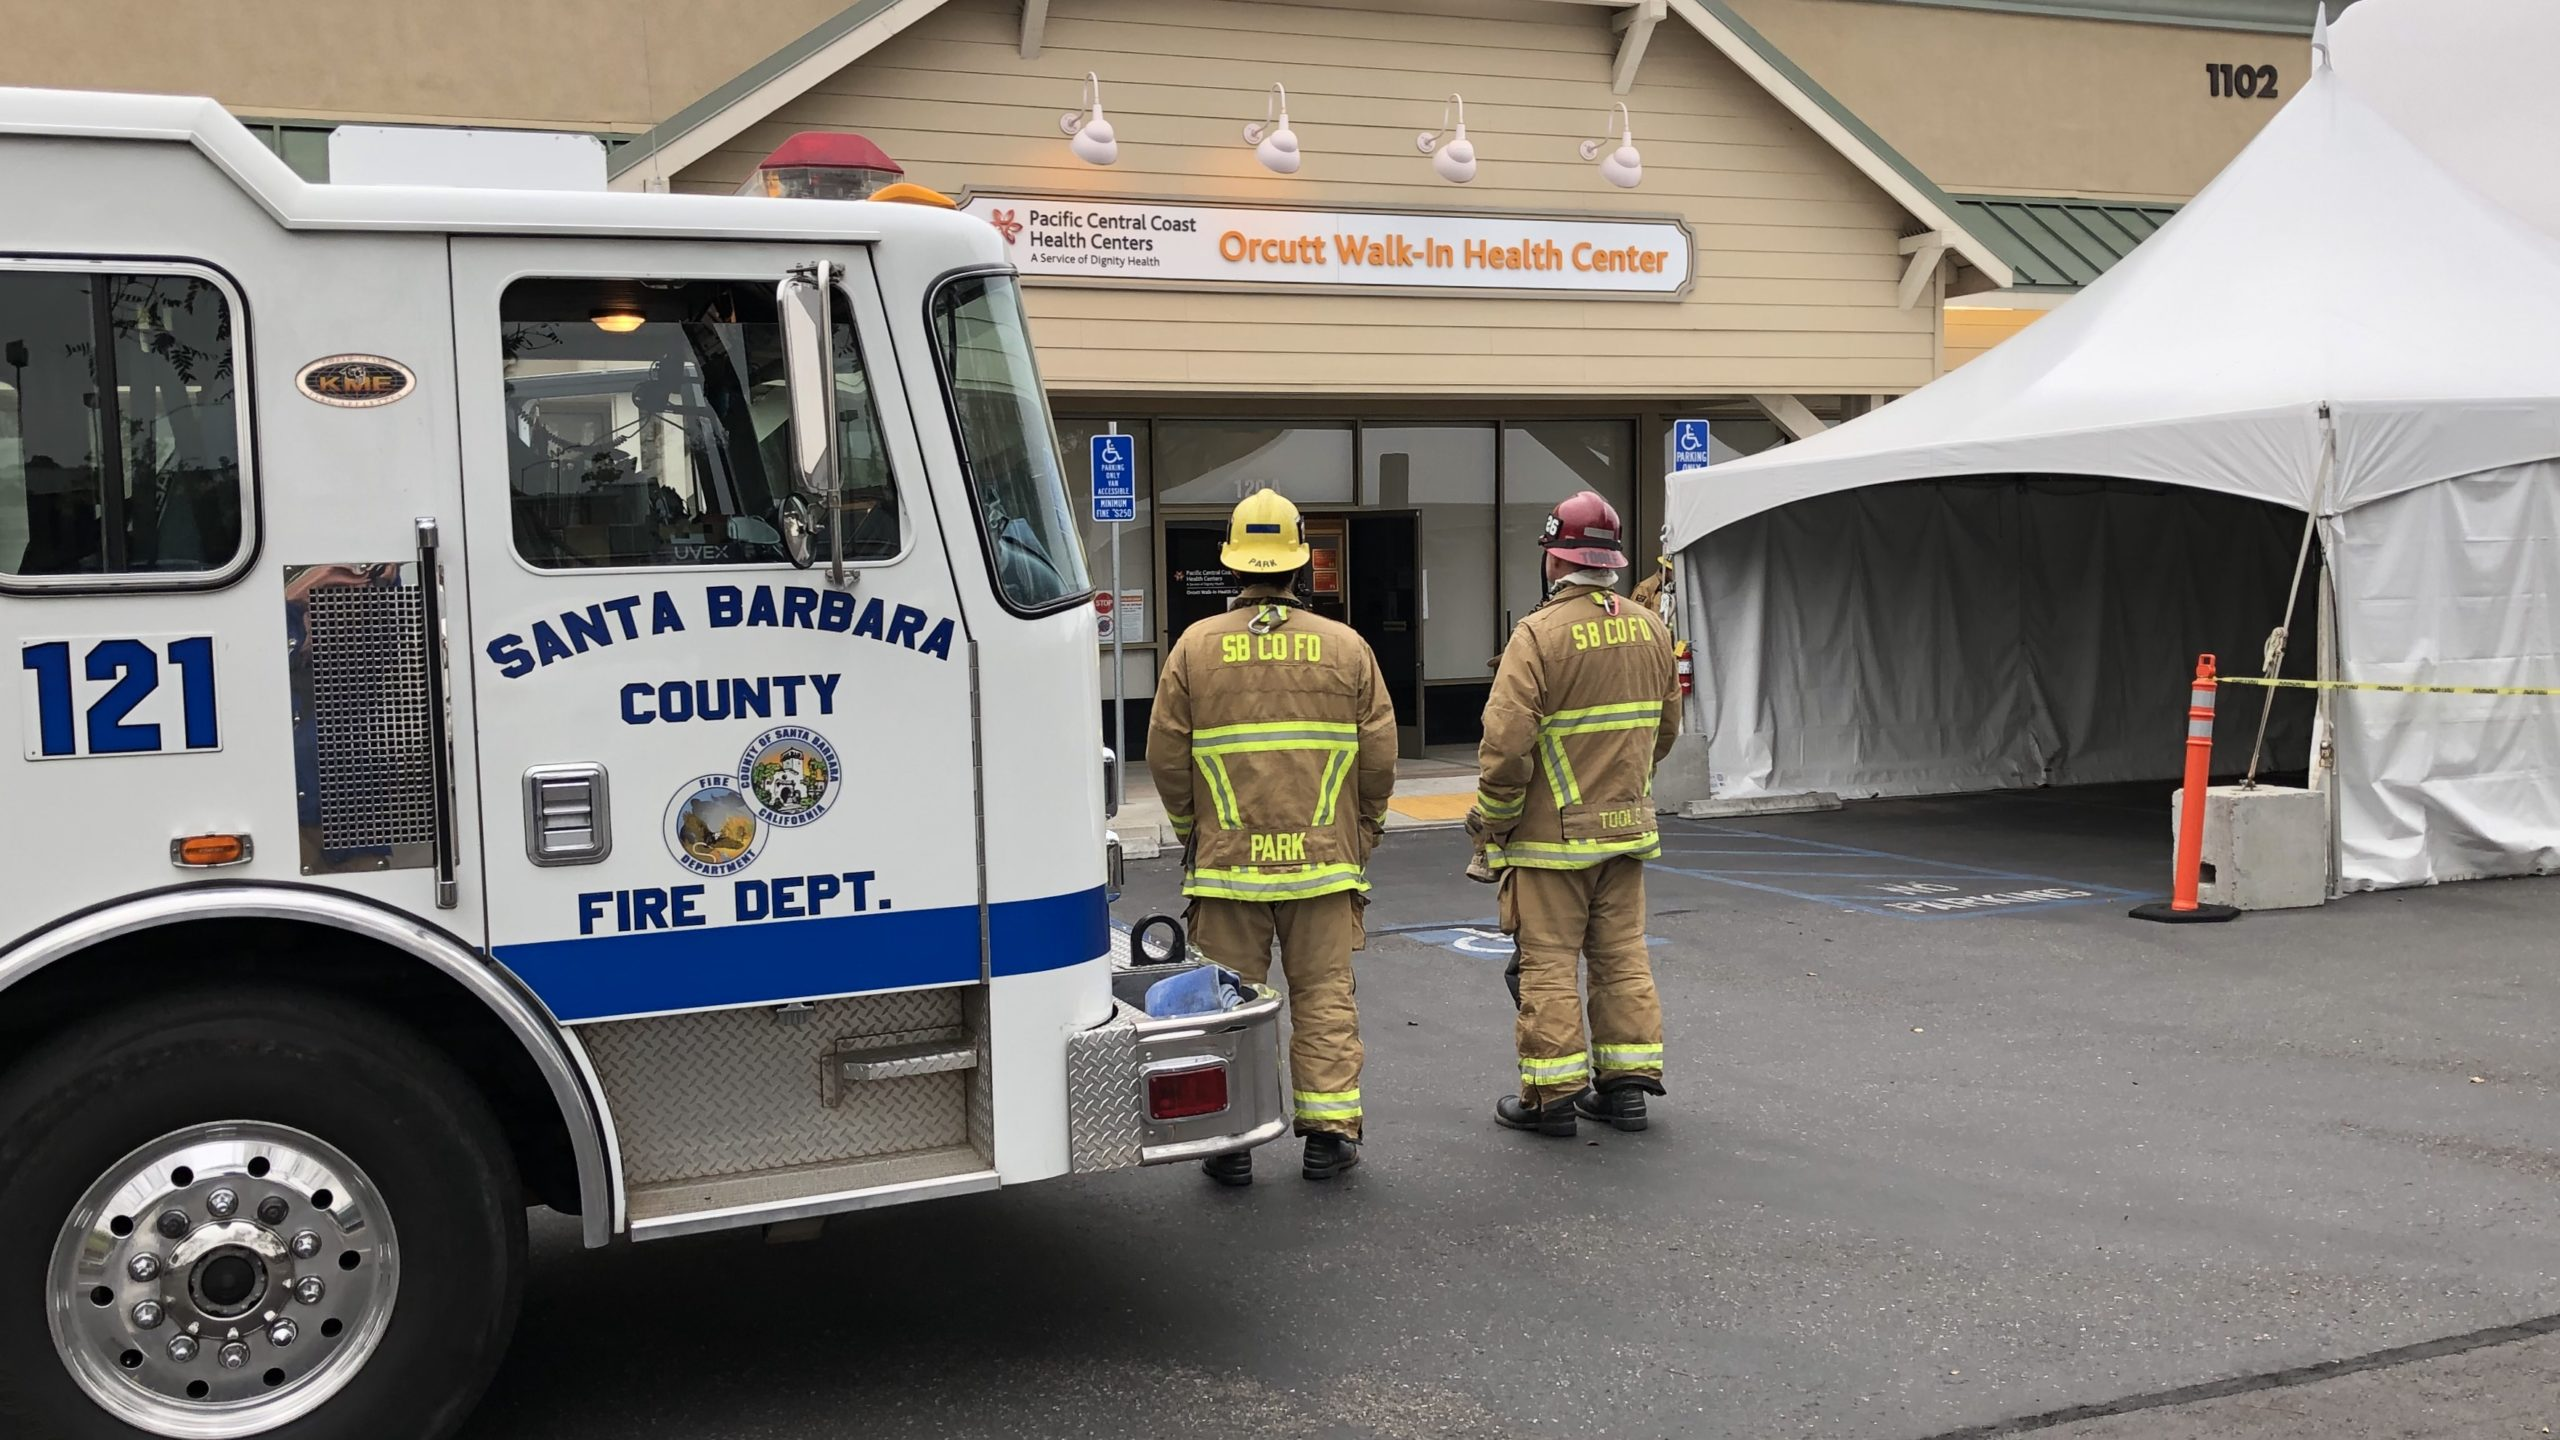 Firefighters respond to electrical fire in Orcutt ...